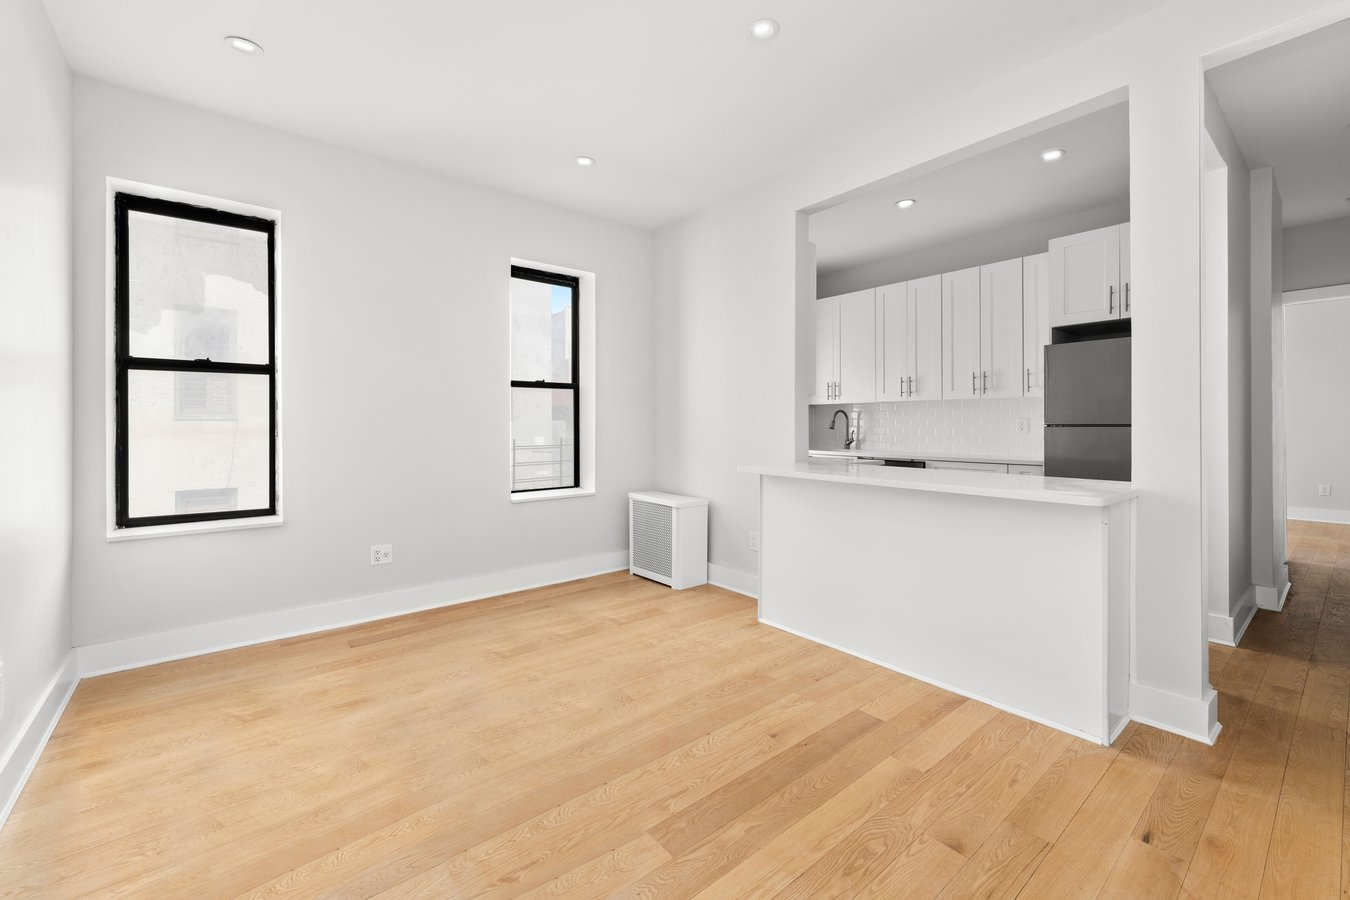 primary photo for 601 Crown Street C2, Brooklyn, NY 11213, US